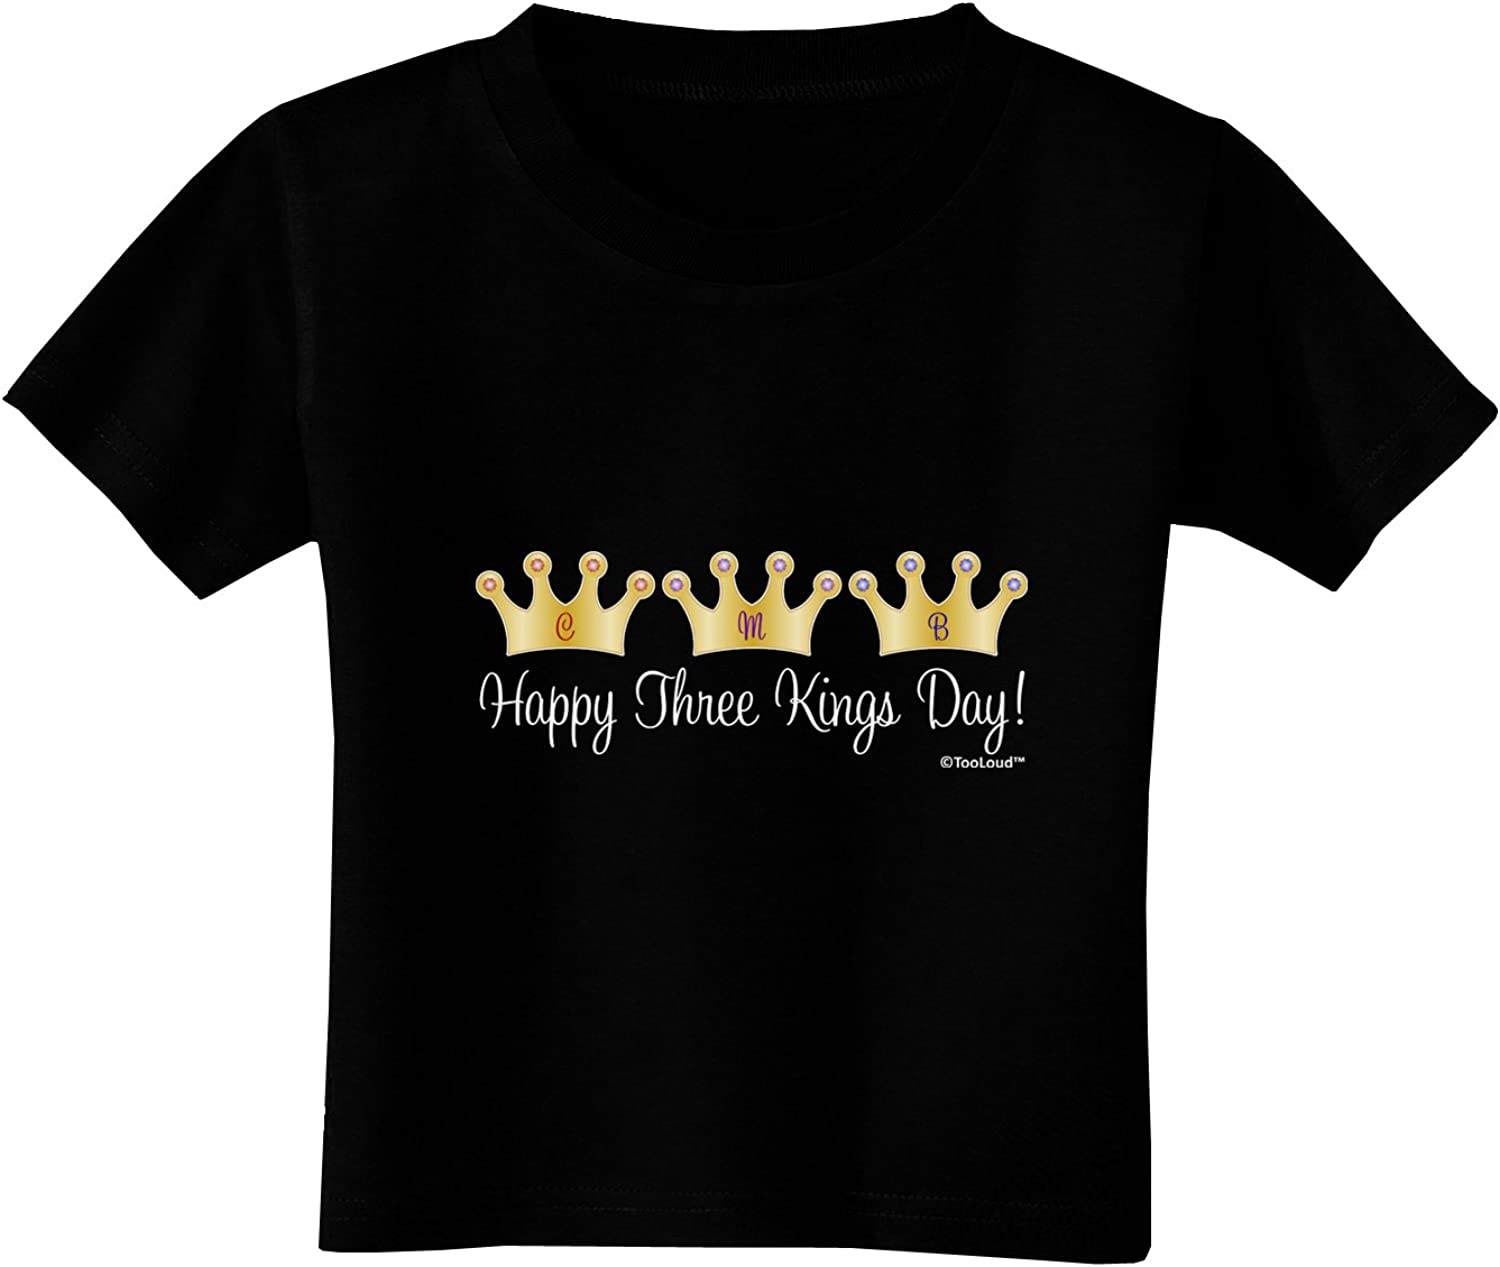 TOOLOUD Happy Three Kings Day 3 Crowns Toddler T-Shirt Dark